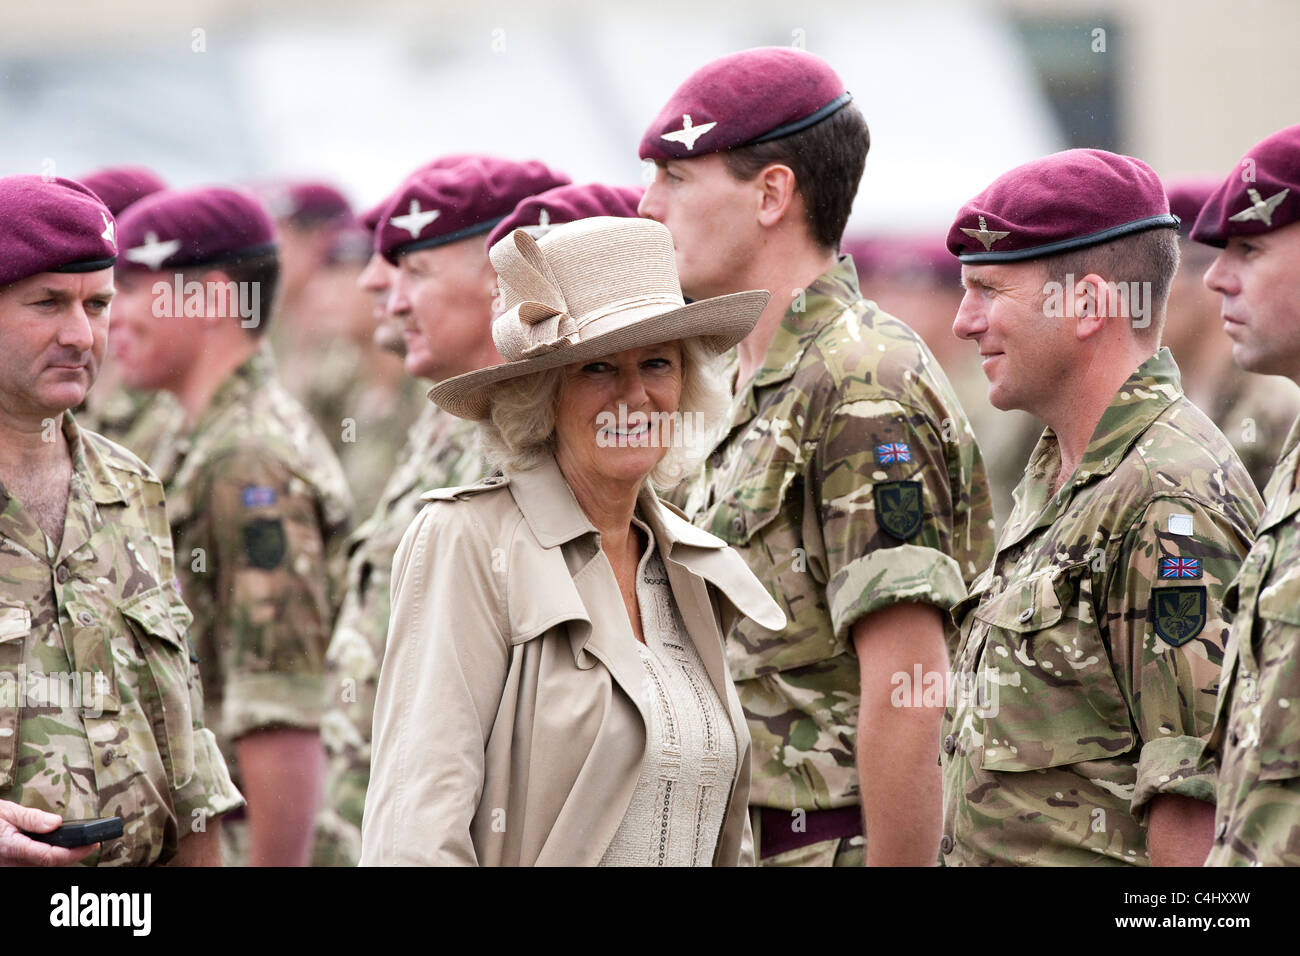 Parachute Regiment High Resolution Stock Photography And Images Alamy